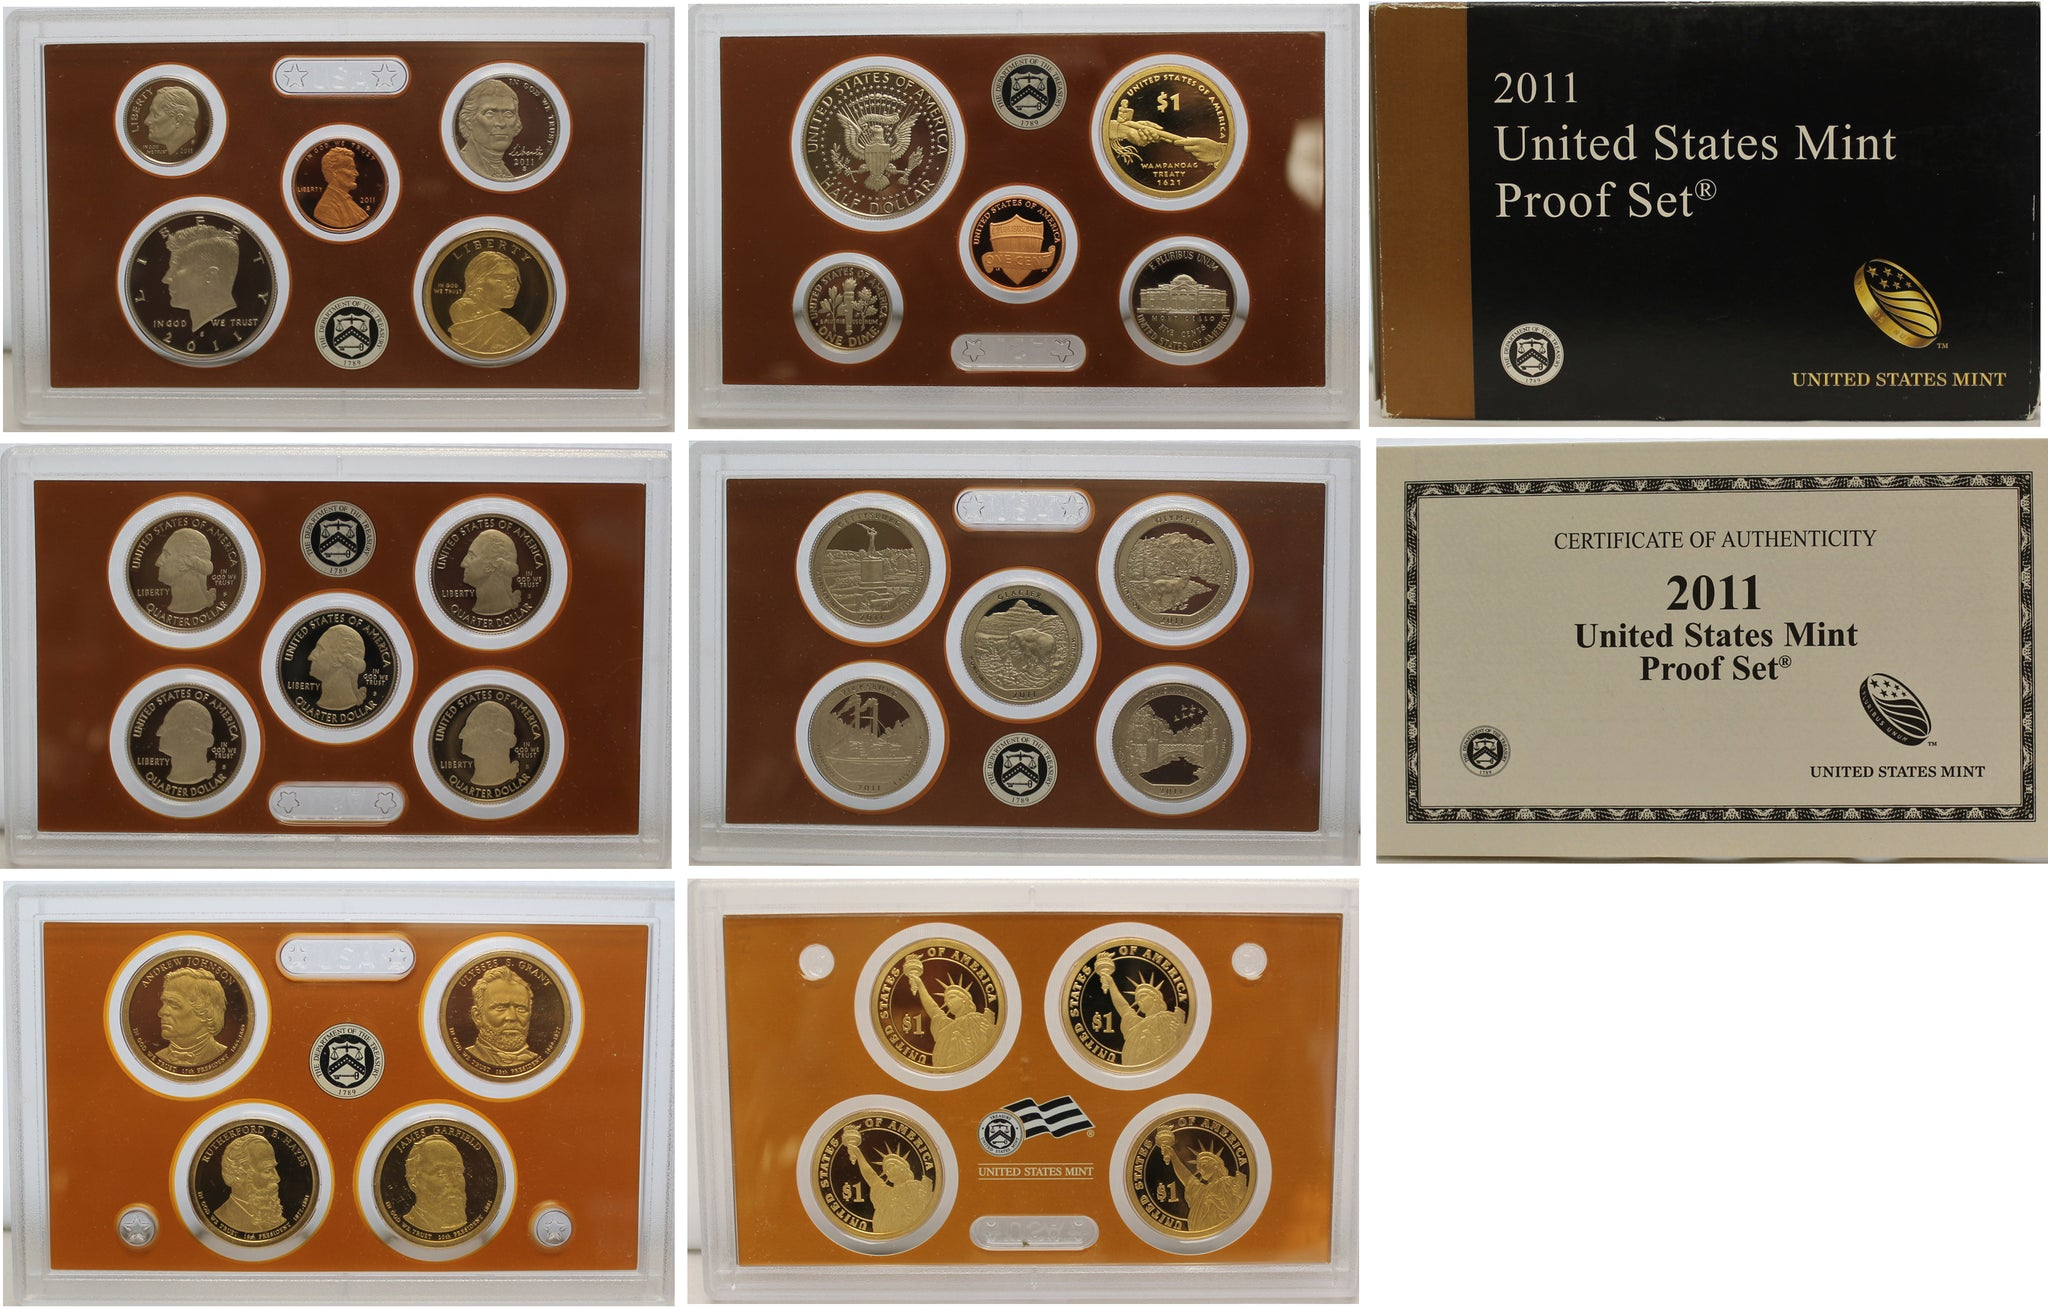 2011 Proof set 10 Pack CN-Clad Kennedy, Presidential Dollar, State quarters OGP 140 coins